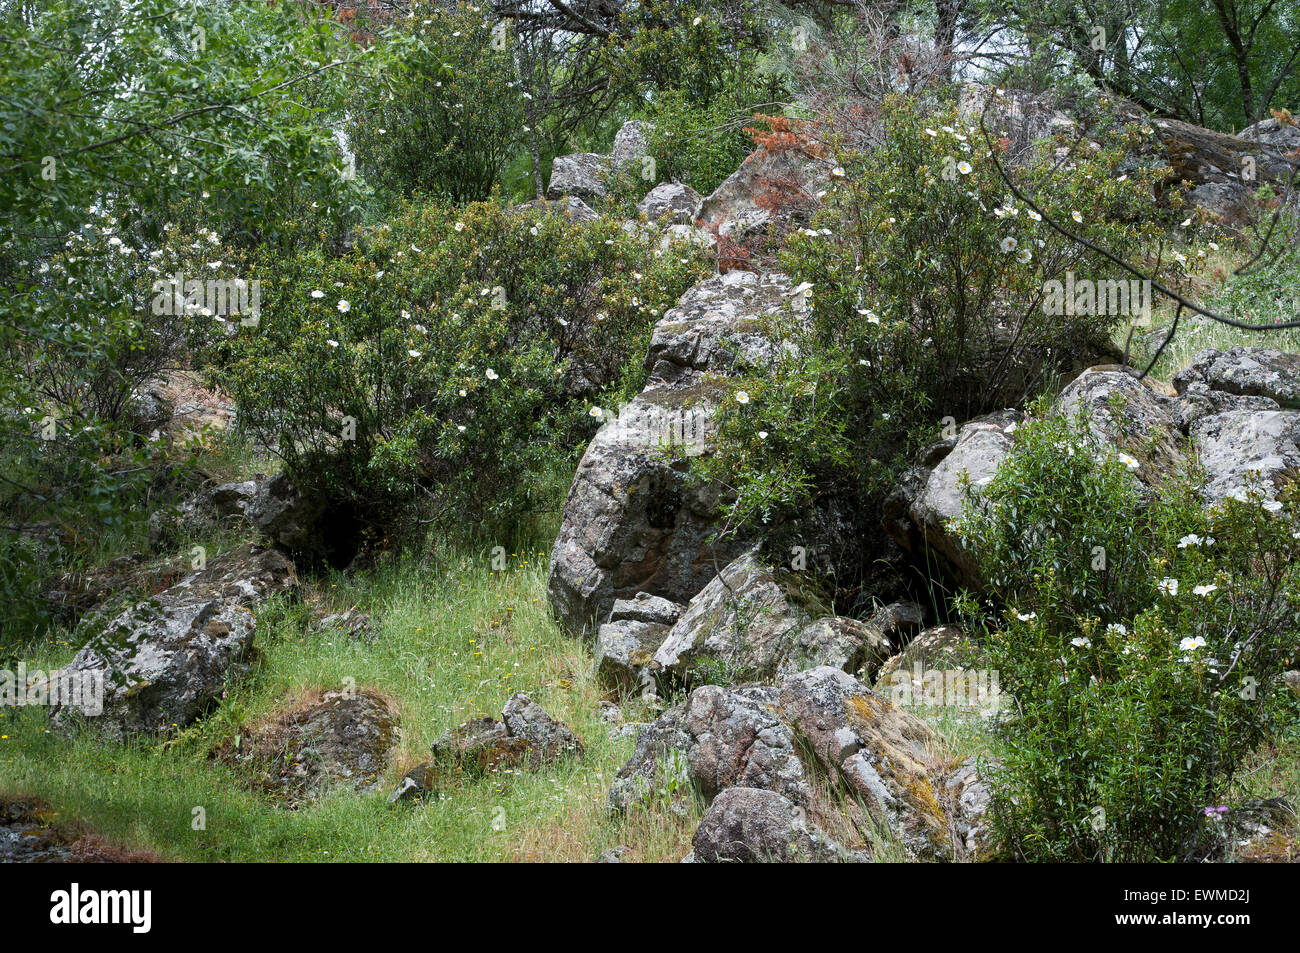 Rockroses growing in a granite mountain. Photo taken in Iruelas Valley Natural Park, Avila, Spain - Stock Image